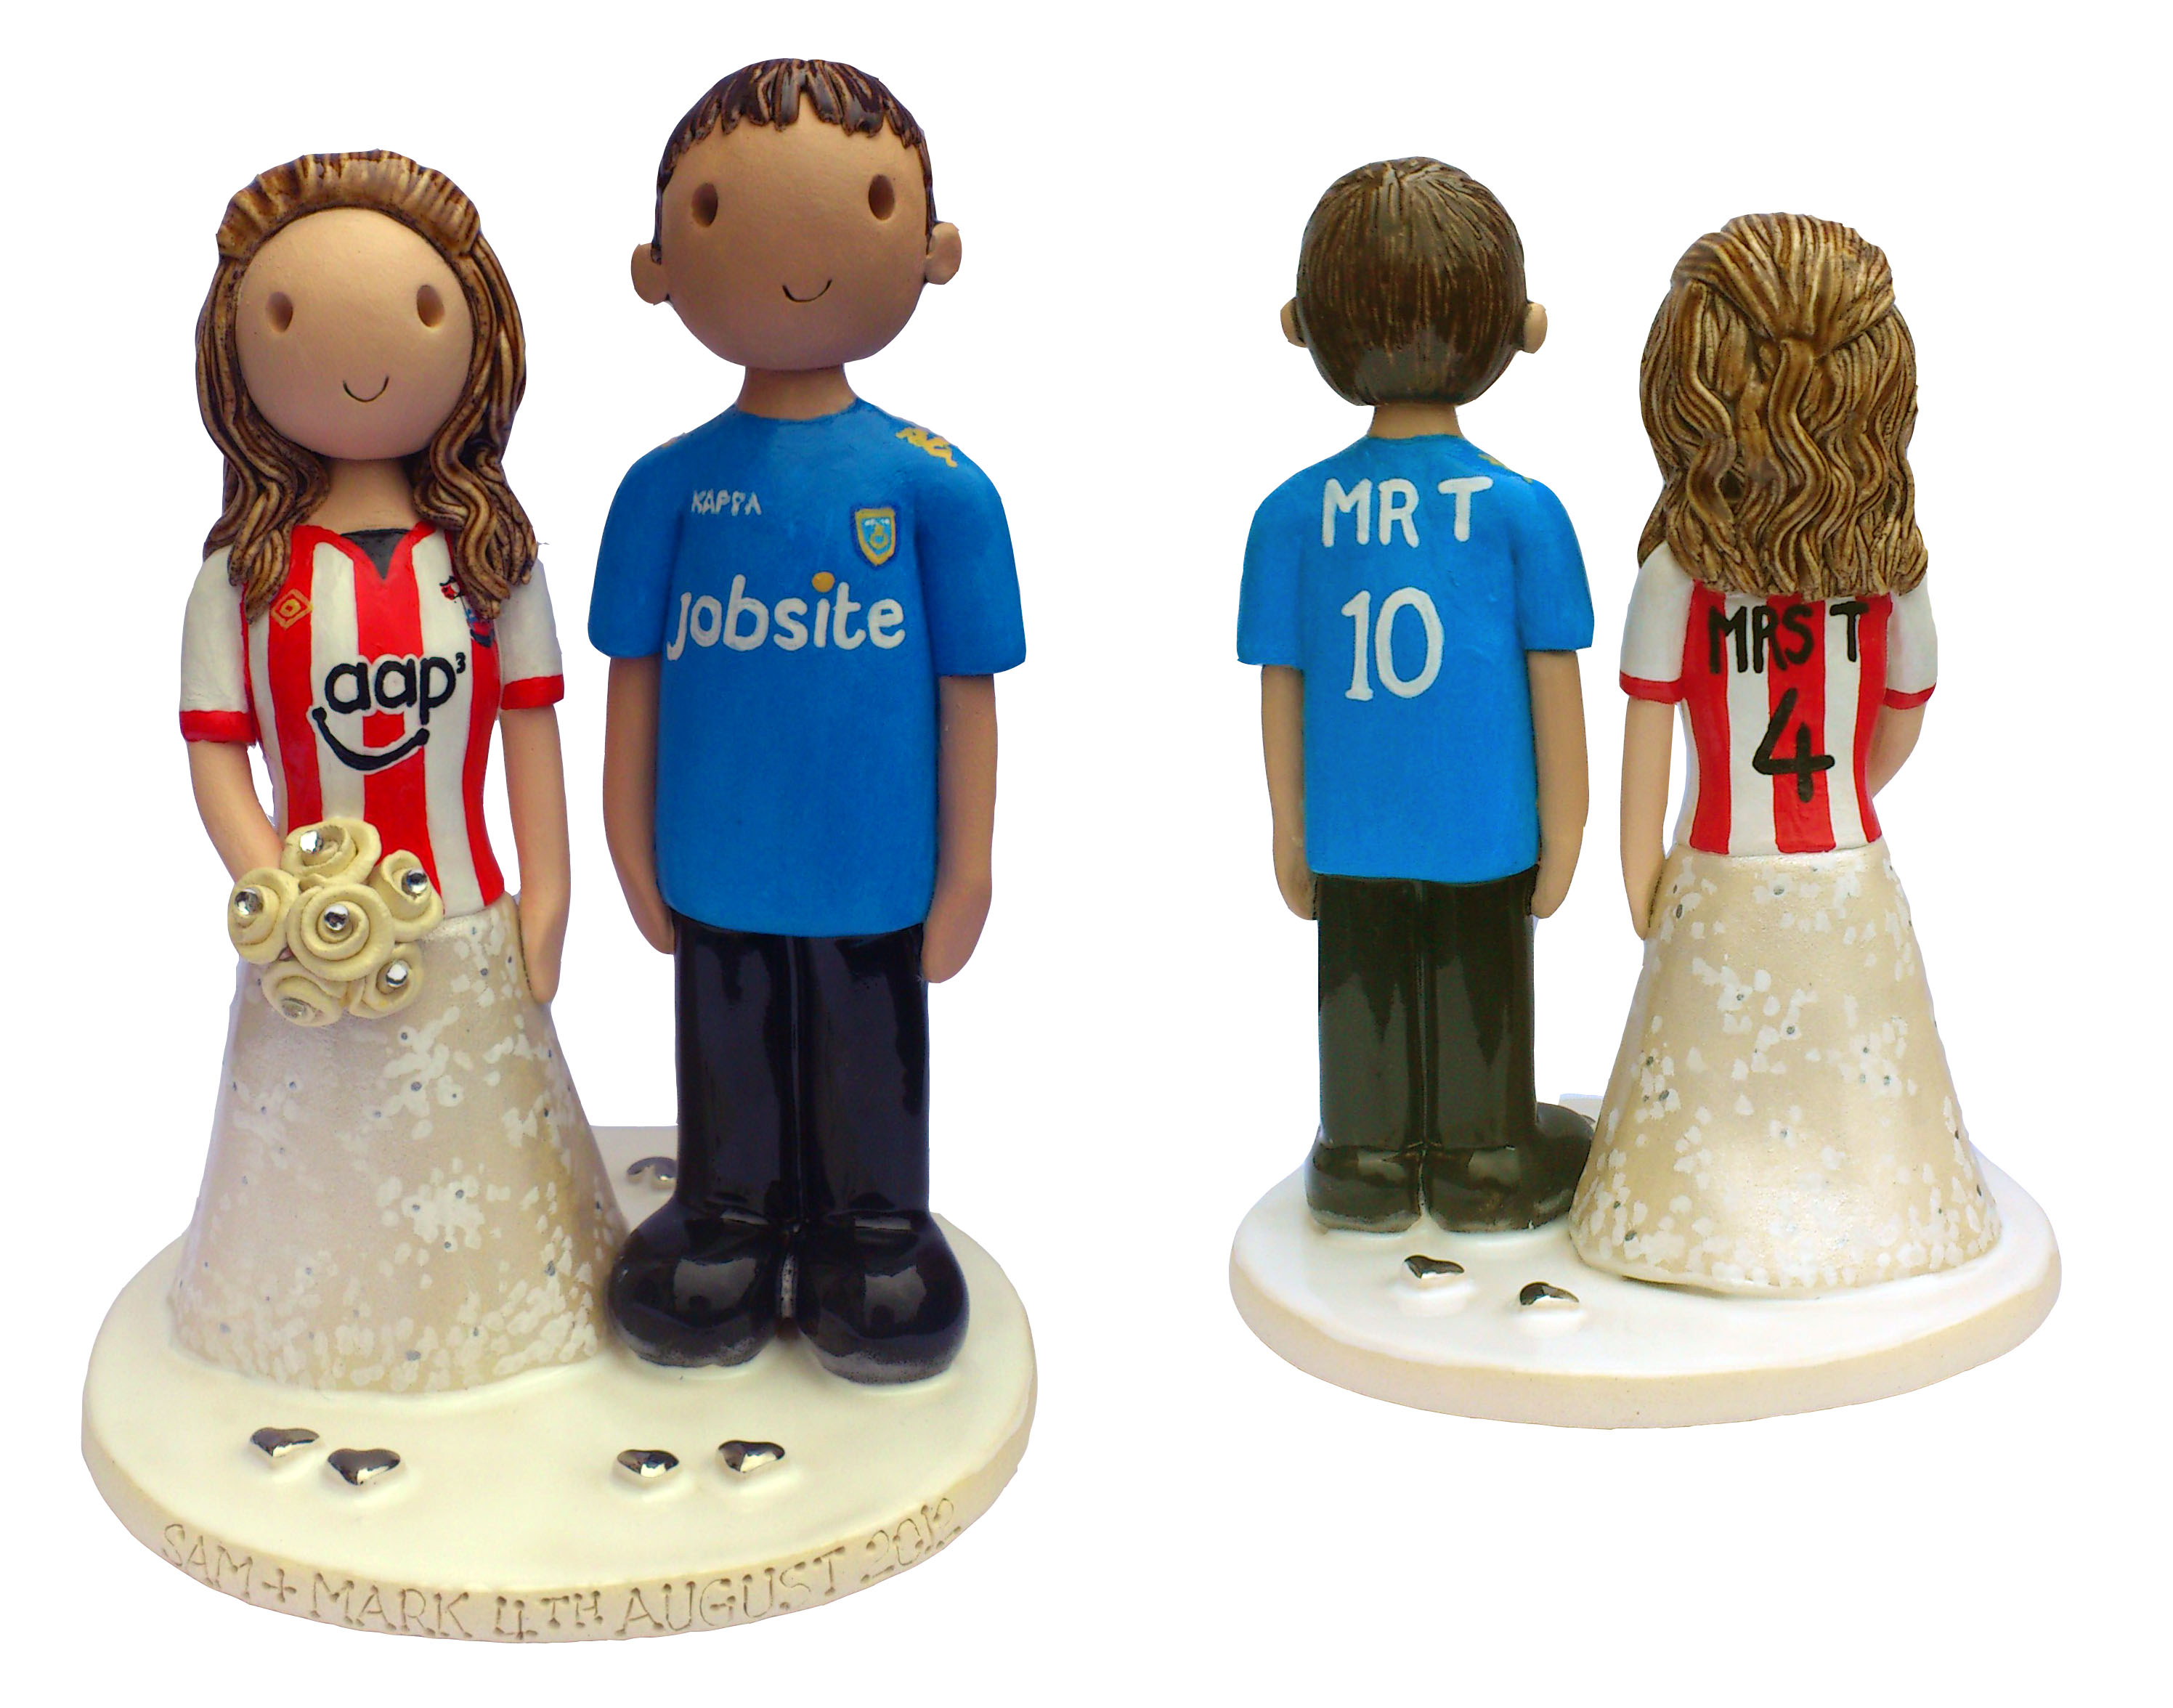 Cake Toppers Uk Wedding : Civil partnerships Archives - Wedding Cake Toppers